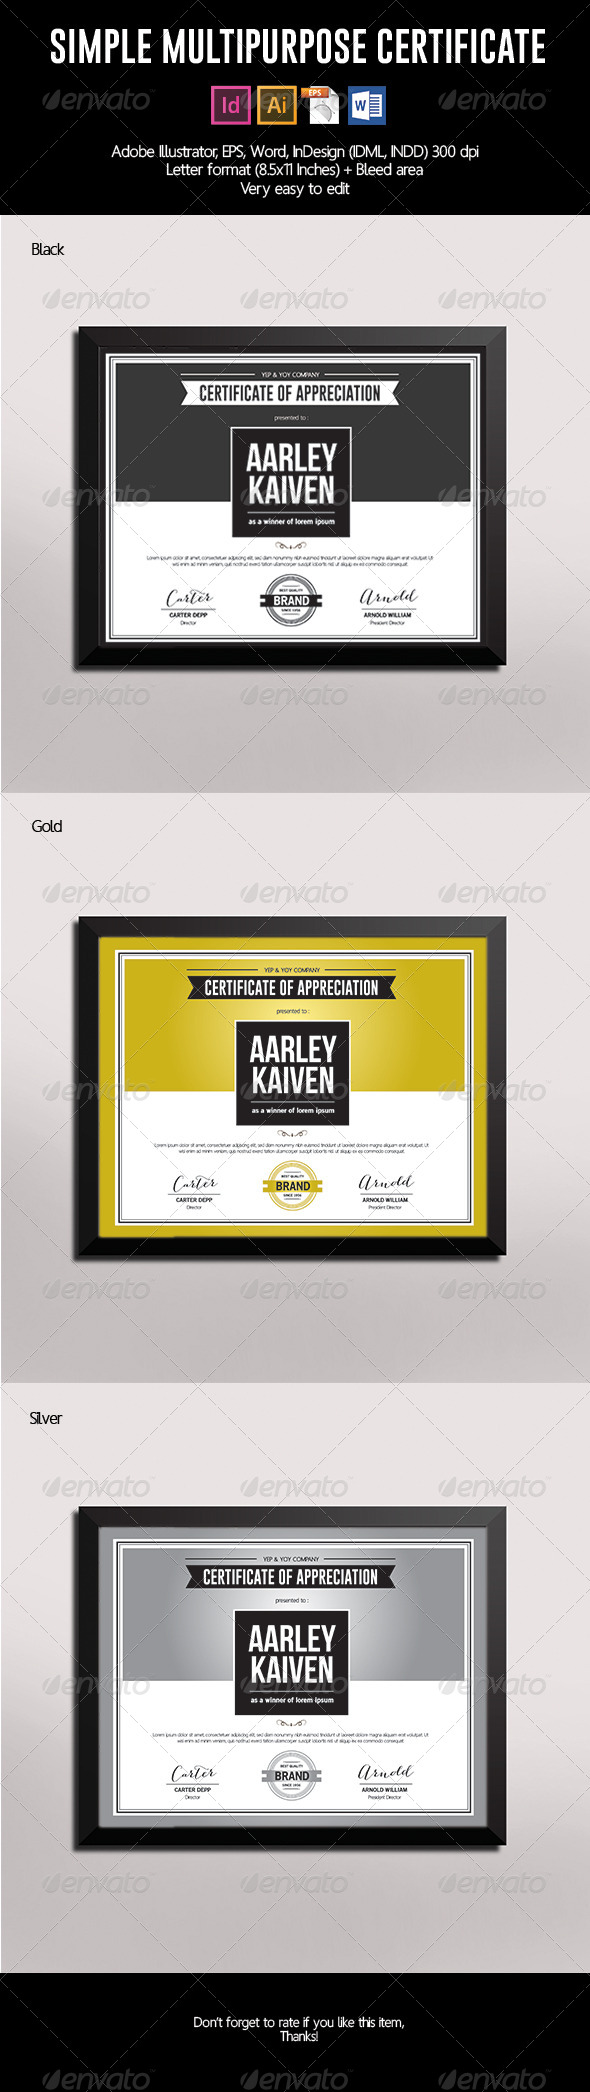 GraphicRiver Simple Multipurpose Certificate 7387689